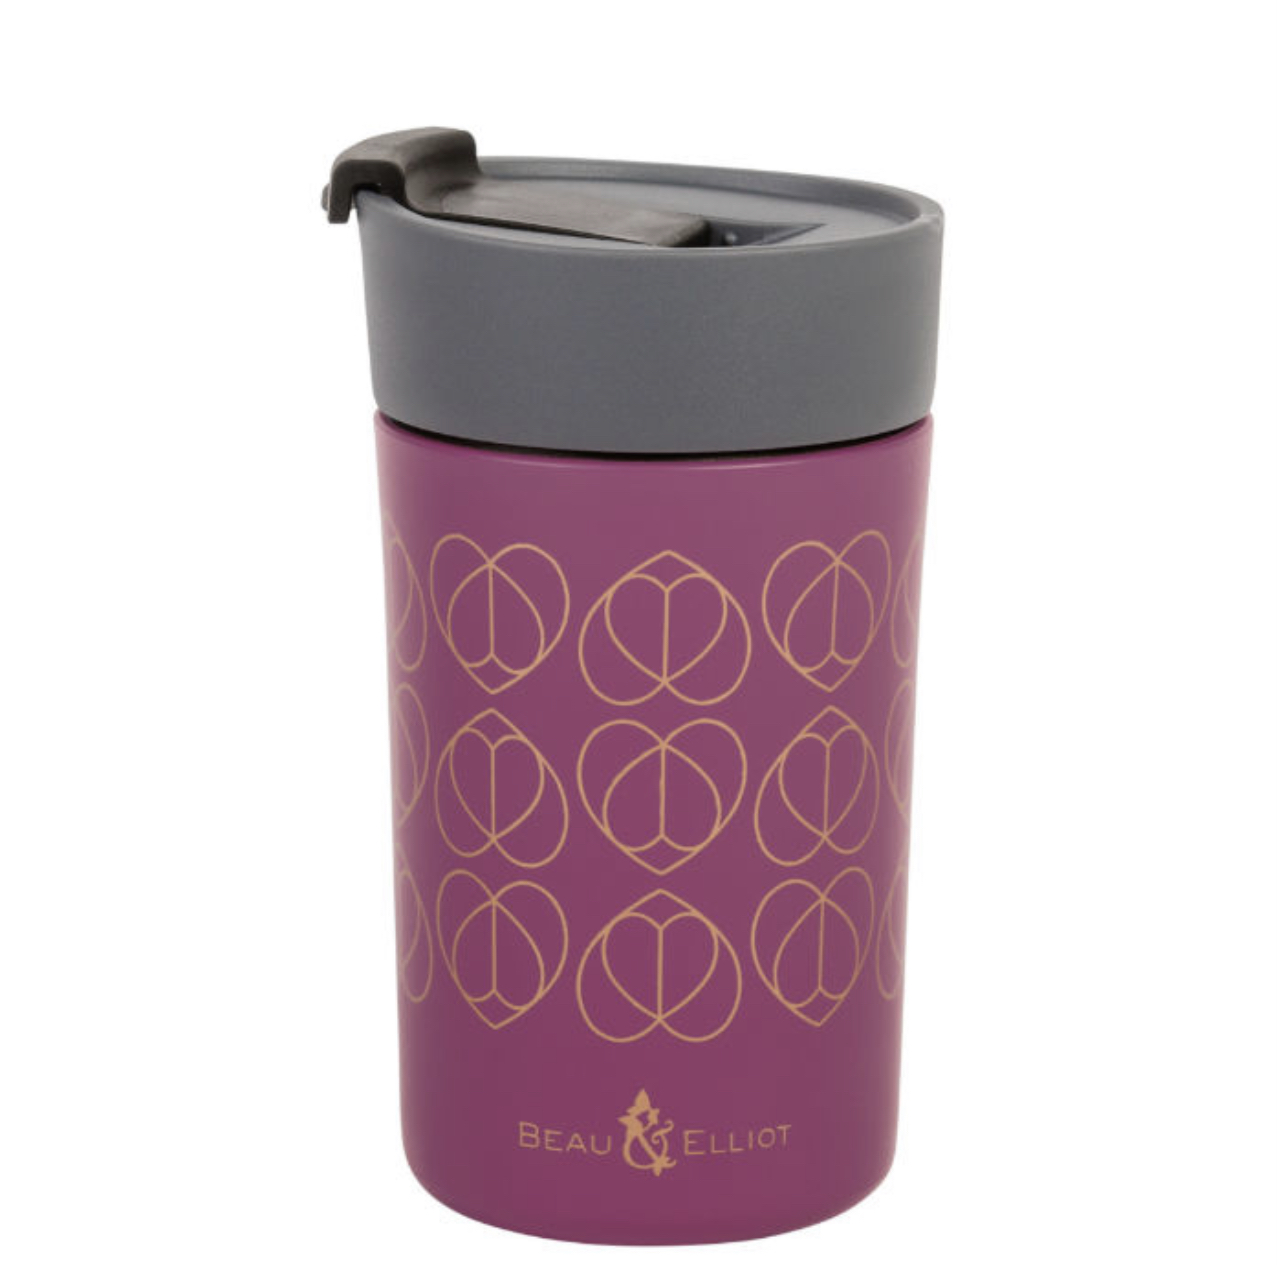 ORCHID VACUUM INSULATED TRAVEL MUG 300ML . BEAU & ELLIOT